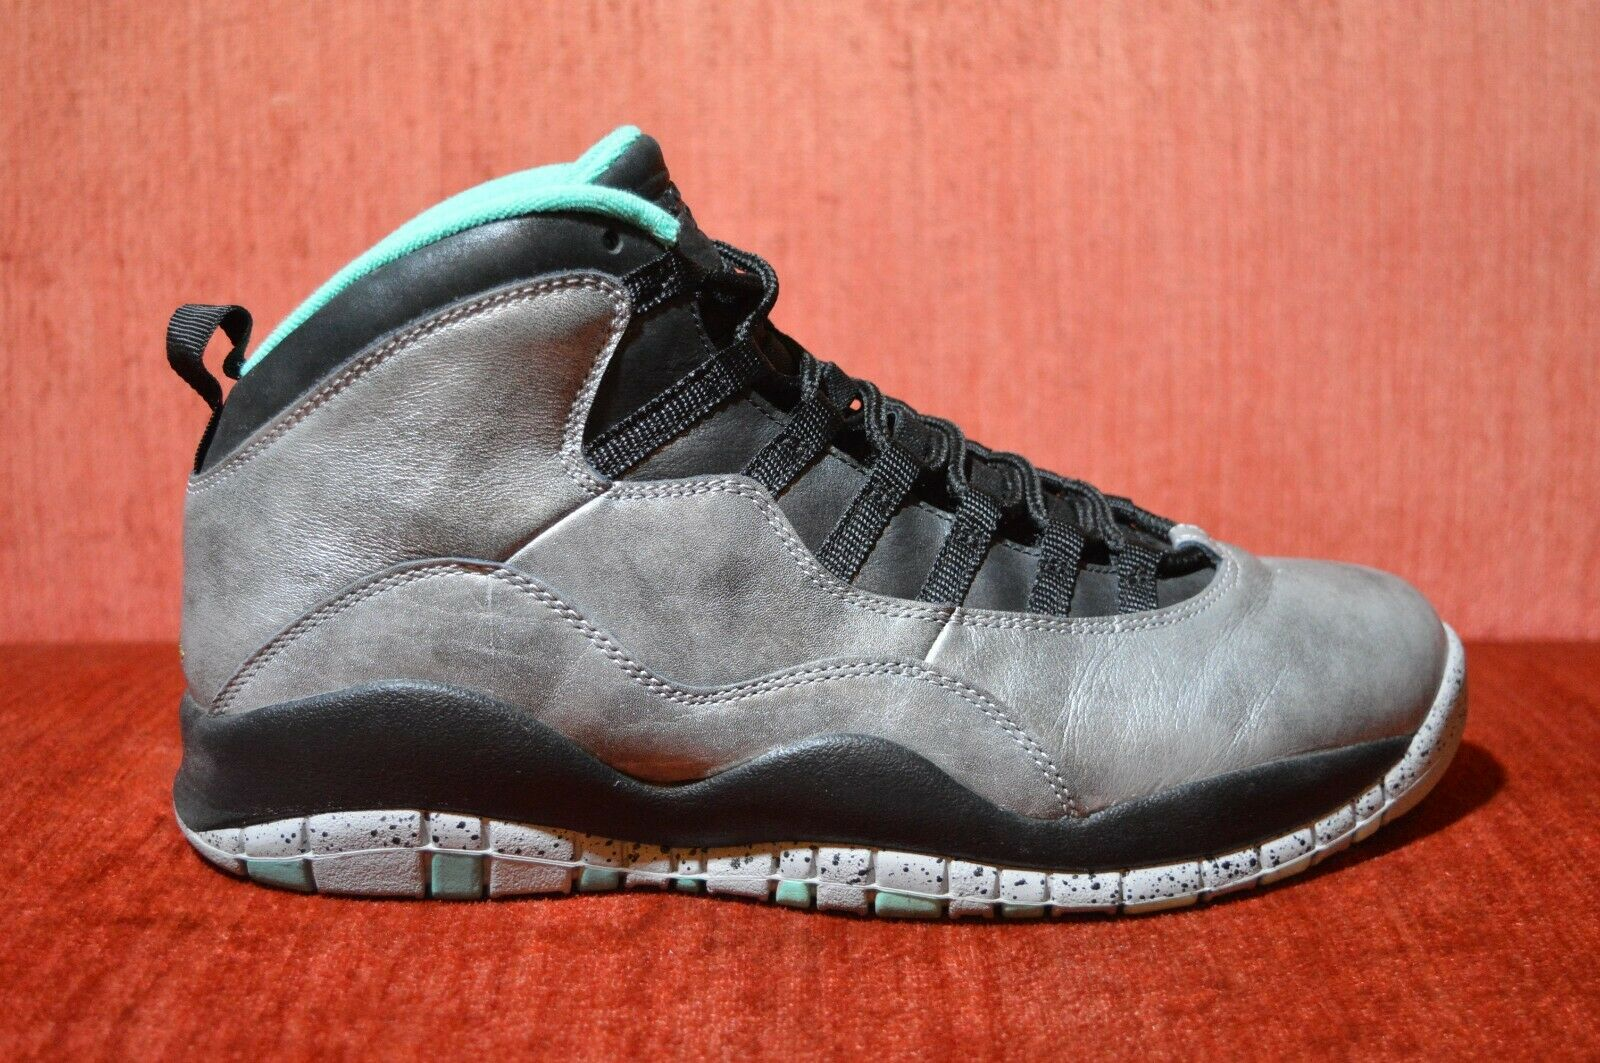 new style 2848a 04b37 WORN TWICE Nike Nike Nike Air JORDAN 10 RETRO X 30TH LADY LIBERTY DUST  705178 045